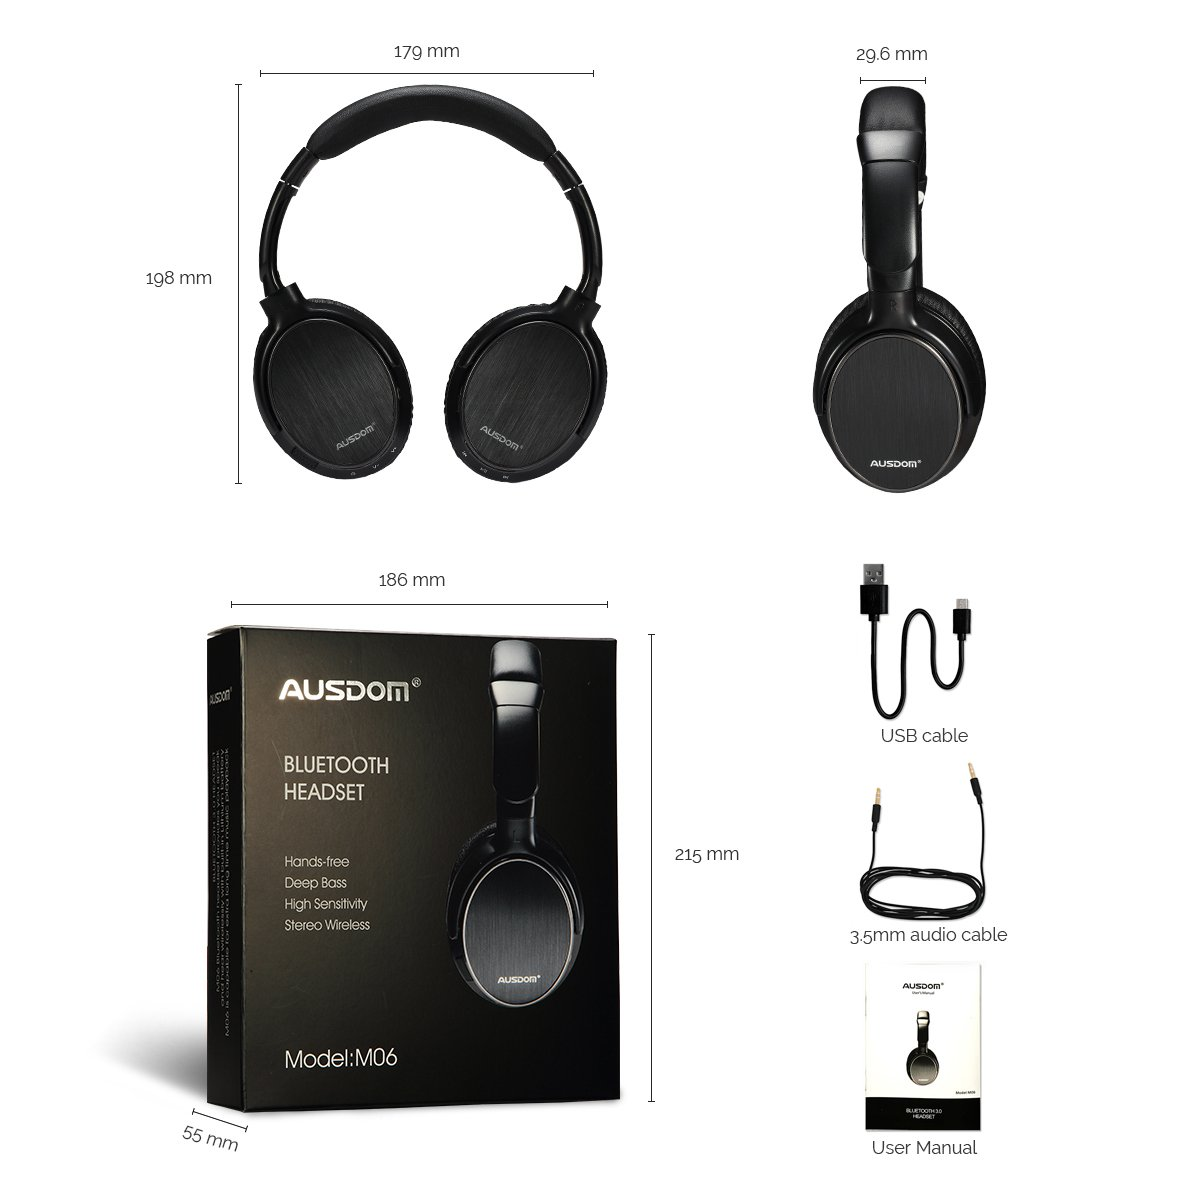 ausdom m06 bluetooth wireless headset wired stereo over ear headphones with mic ebay. Black Bedroom Furniture Sets. Home Design Ideas